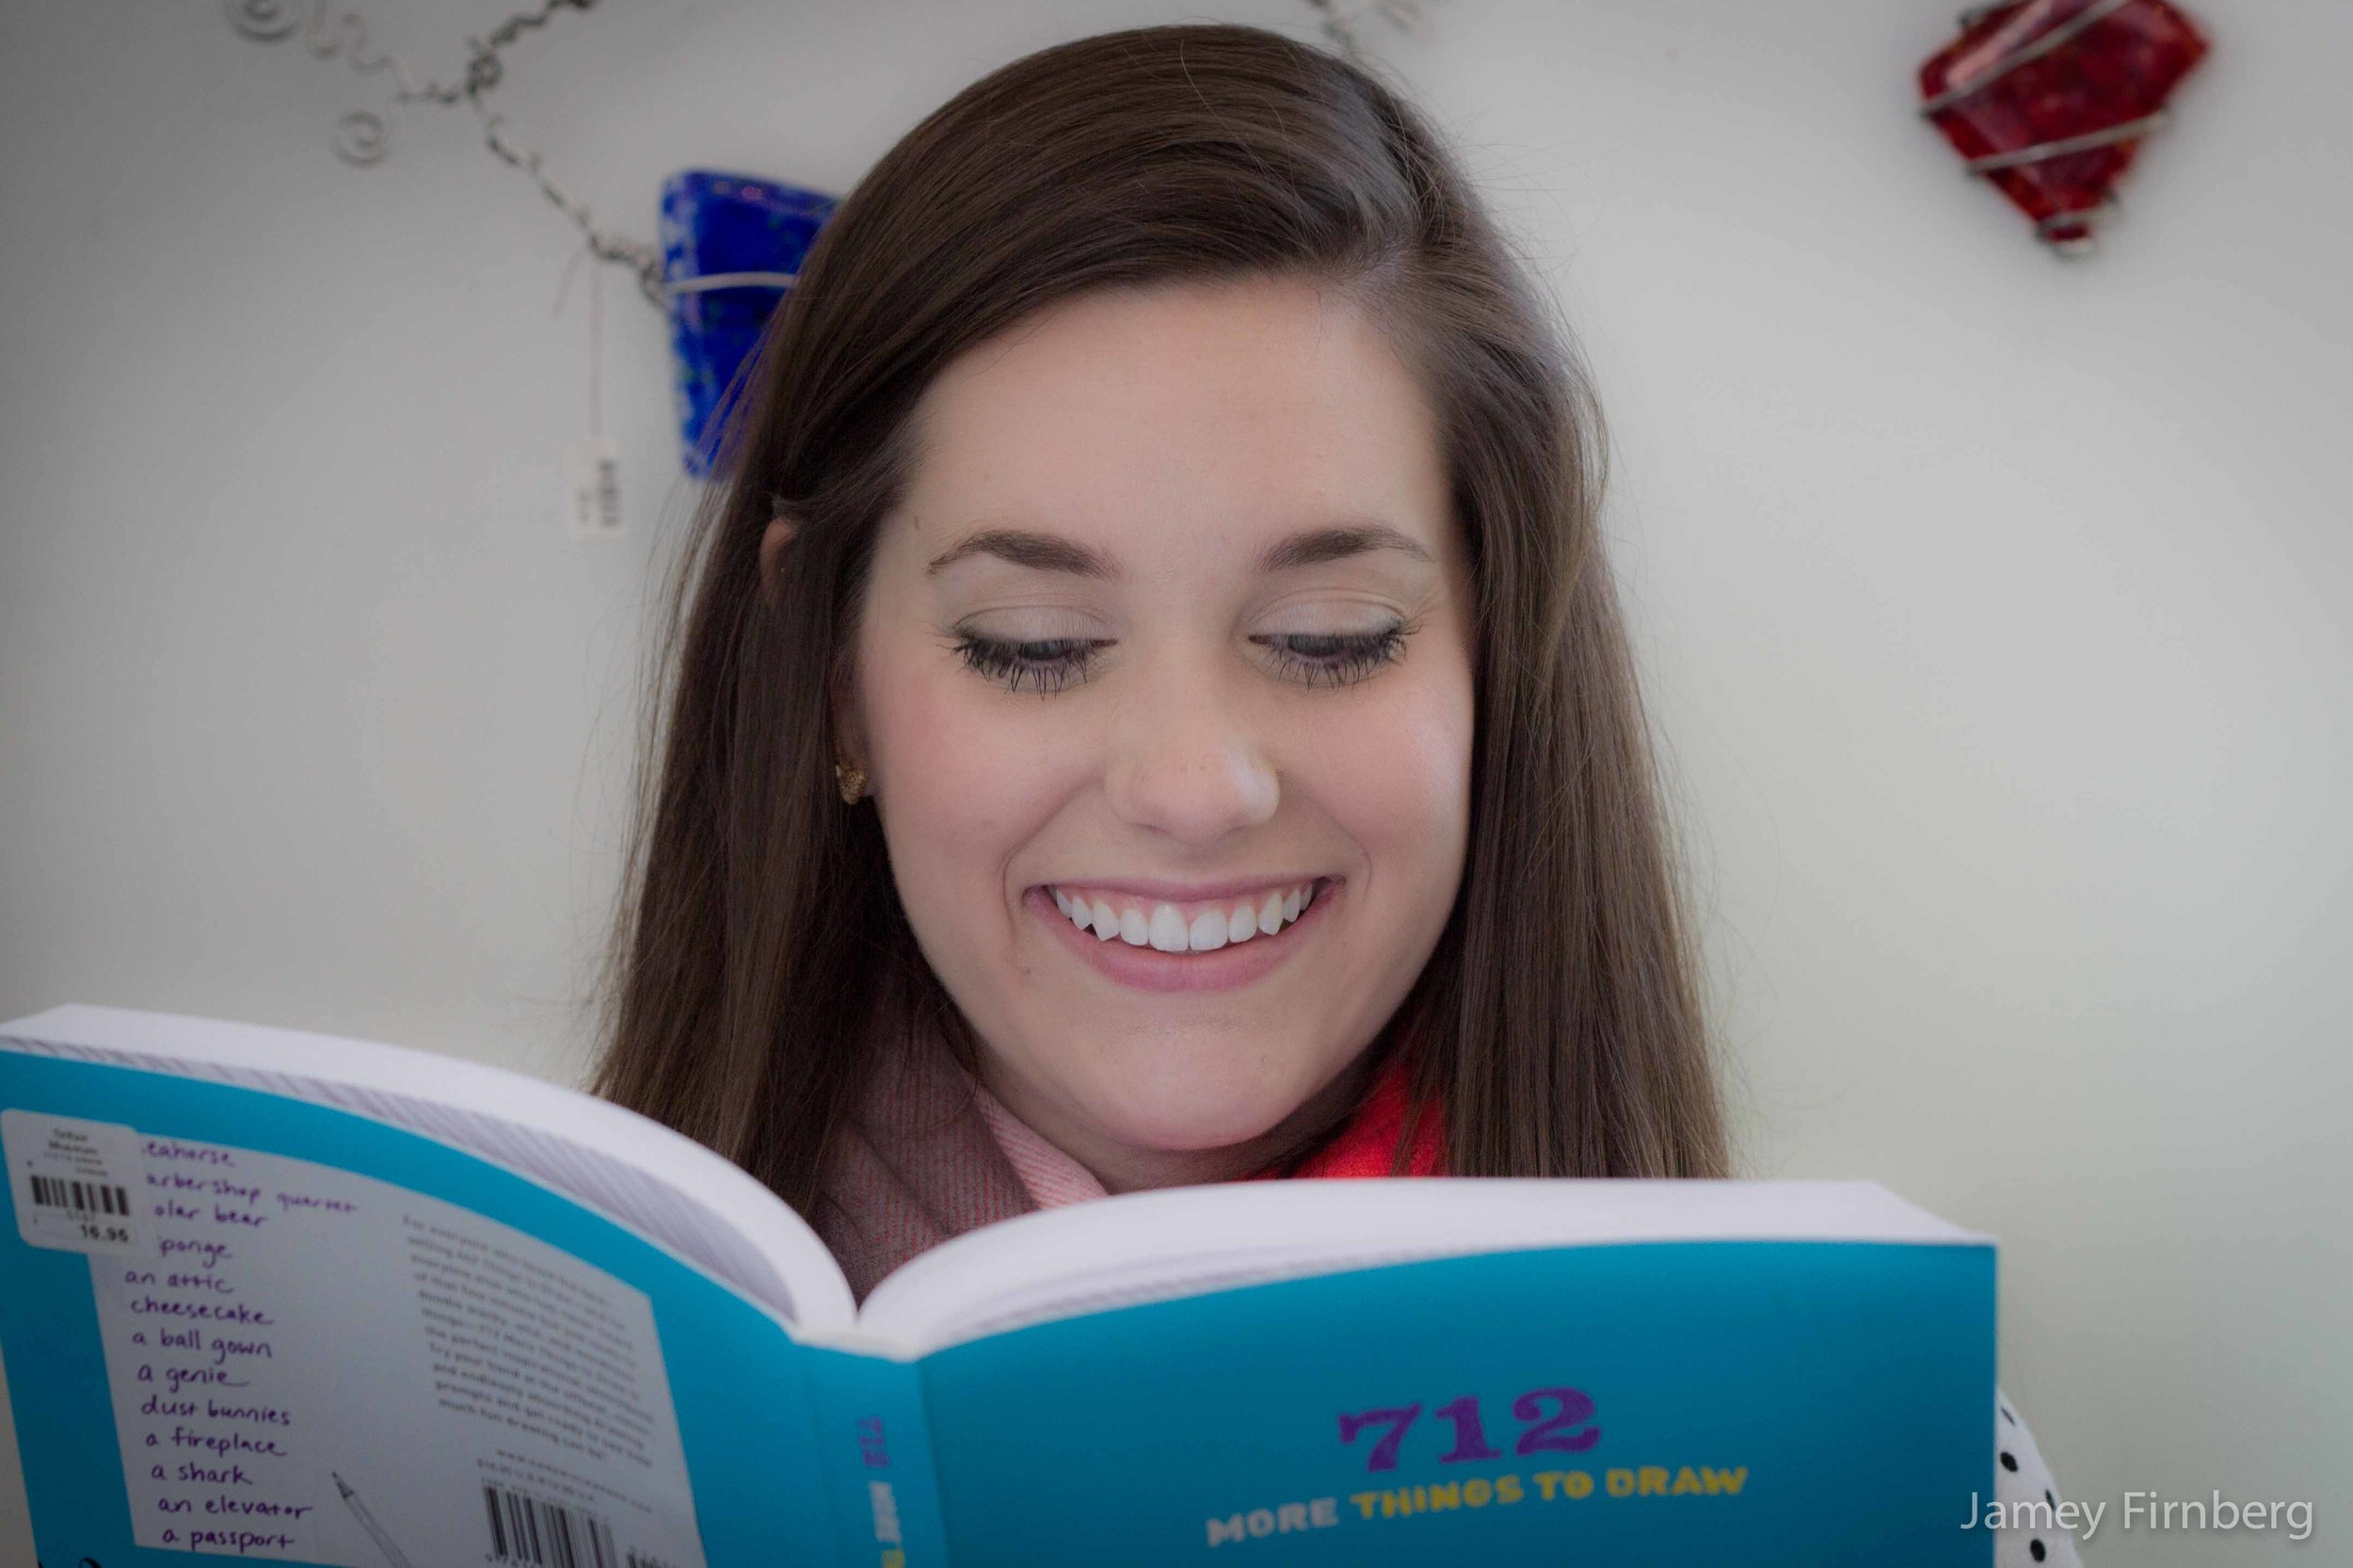 Paige with Book-3.jpg